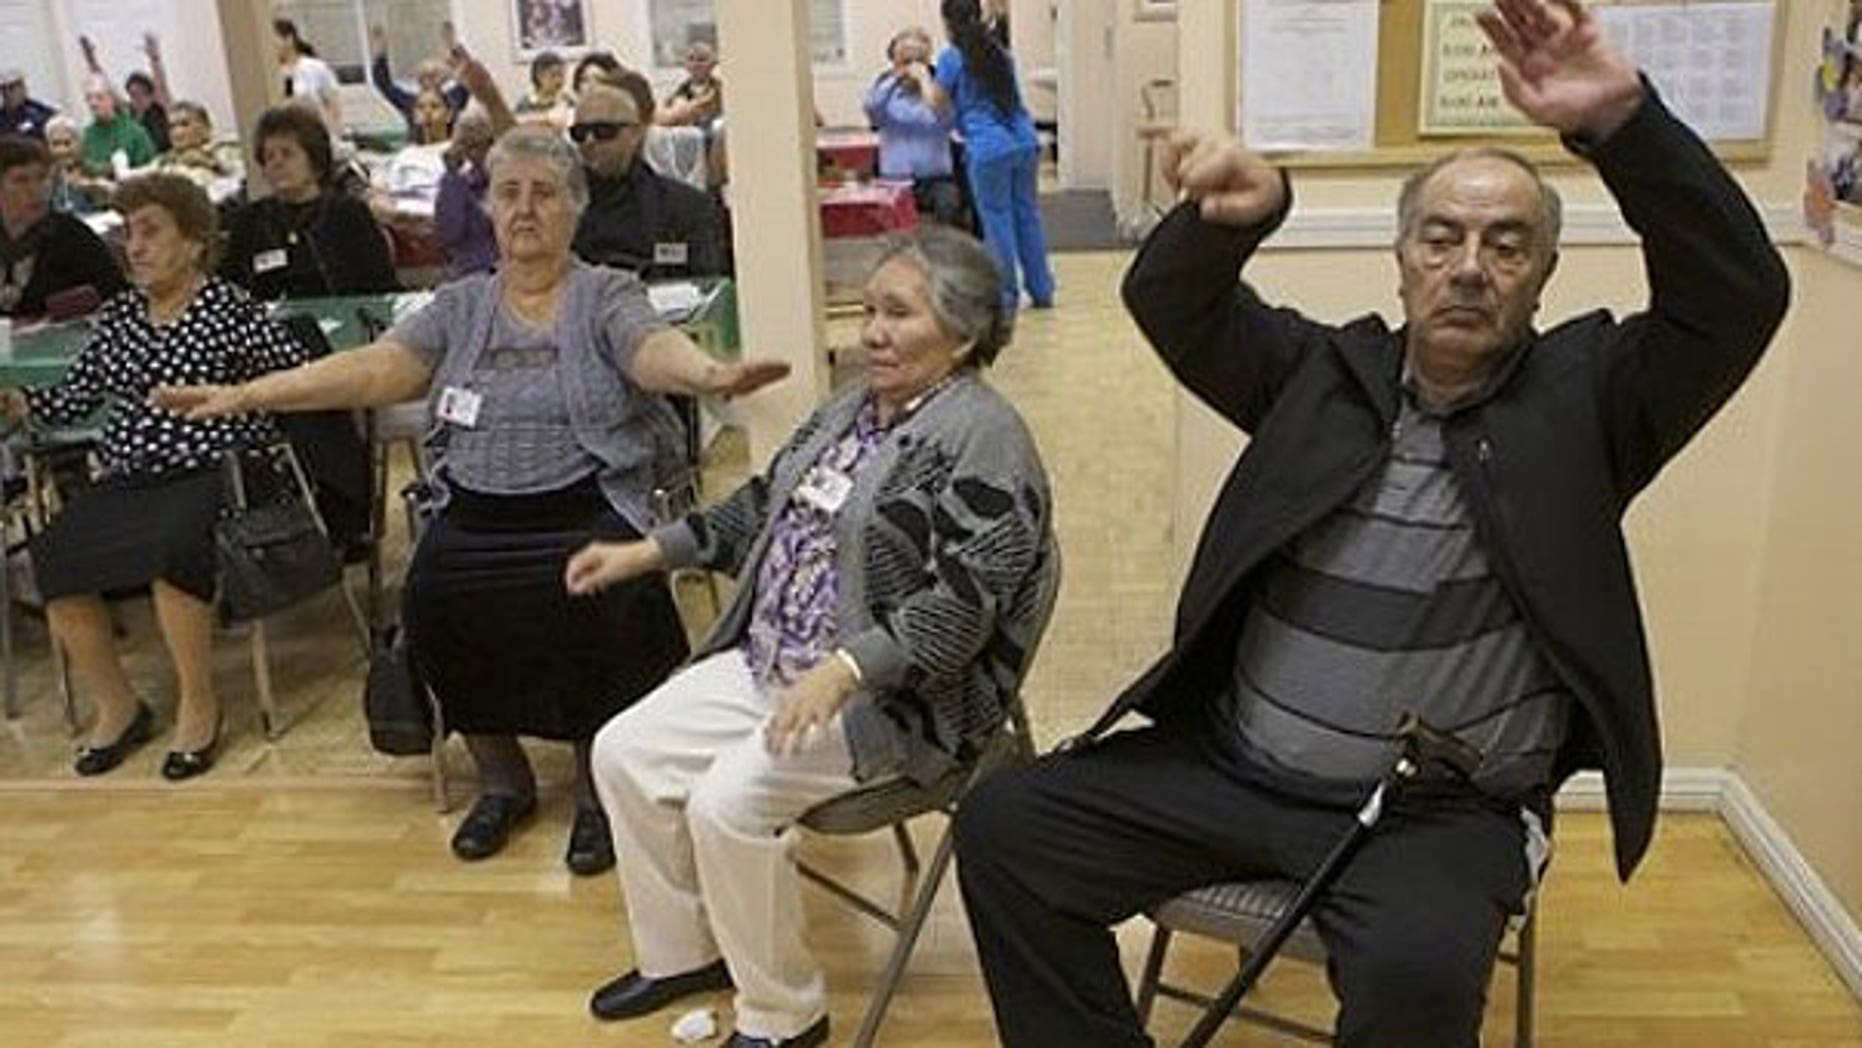 Jan. 19, 2011: Senior citizens do physical therapy at the Glendale Gardens Adult Day Health Care center in Glendale, Calif.